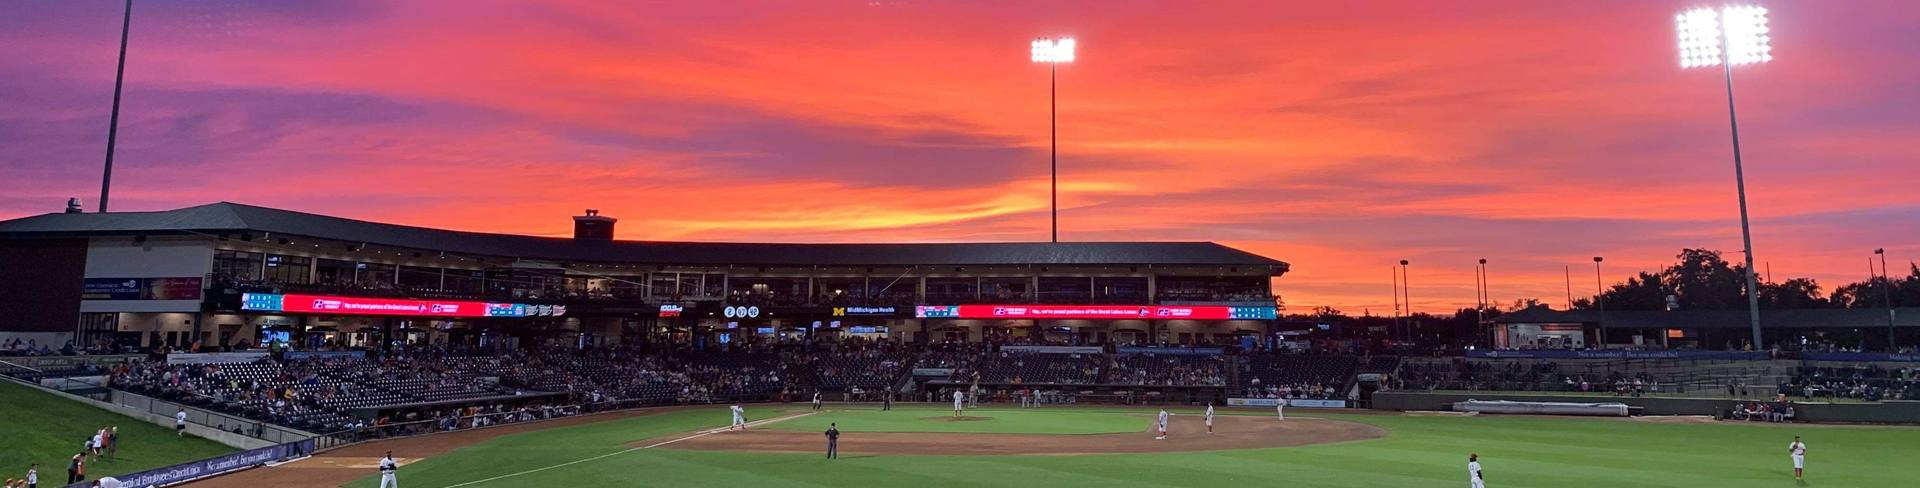 A sunset over Dow Diamond during a Great Lakes Loons baseball game